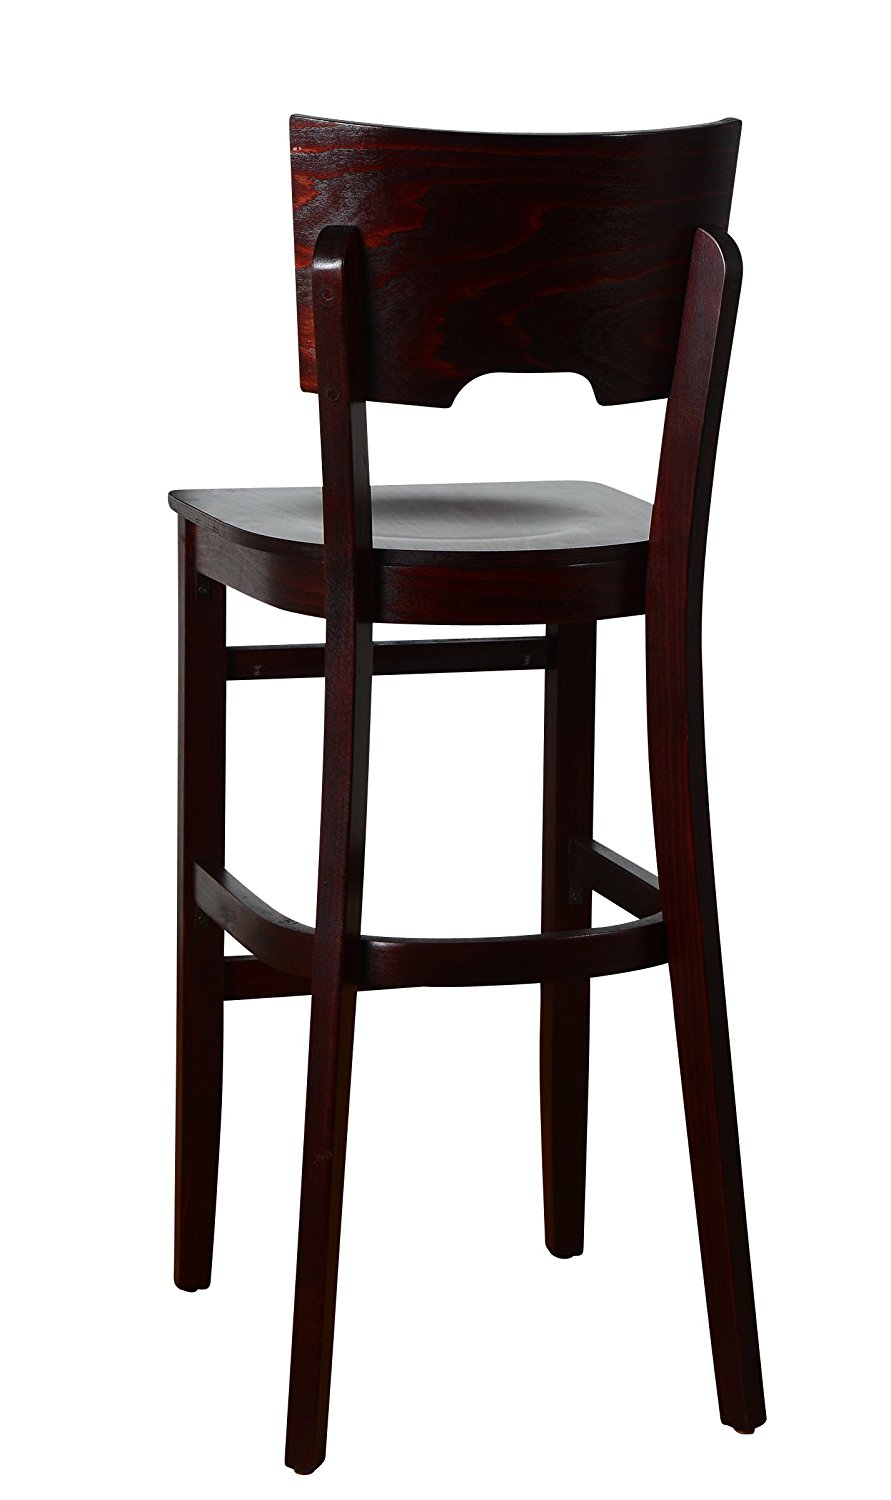 Beechwood Mountain BSD-11BW-Dm Solid Beech Wood bar Stool in Dark Mahogany with Wood Seat for Kitchen & Dining, NA by Overstock